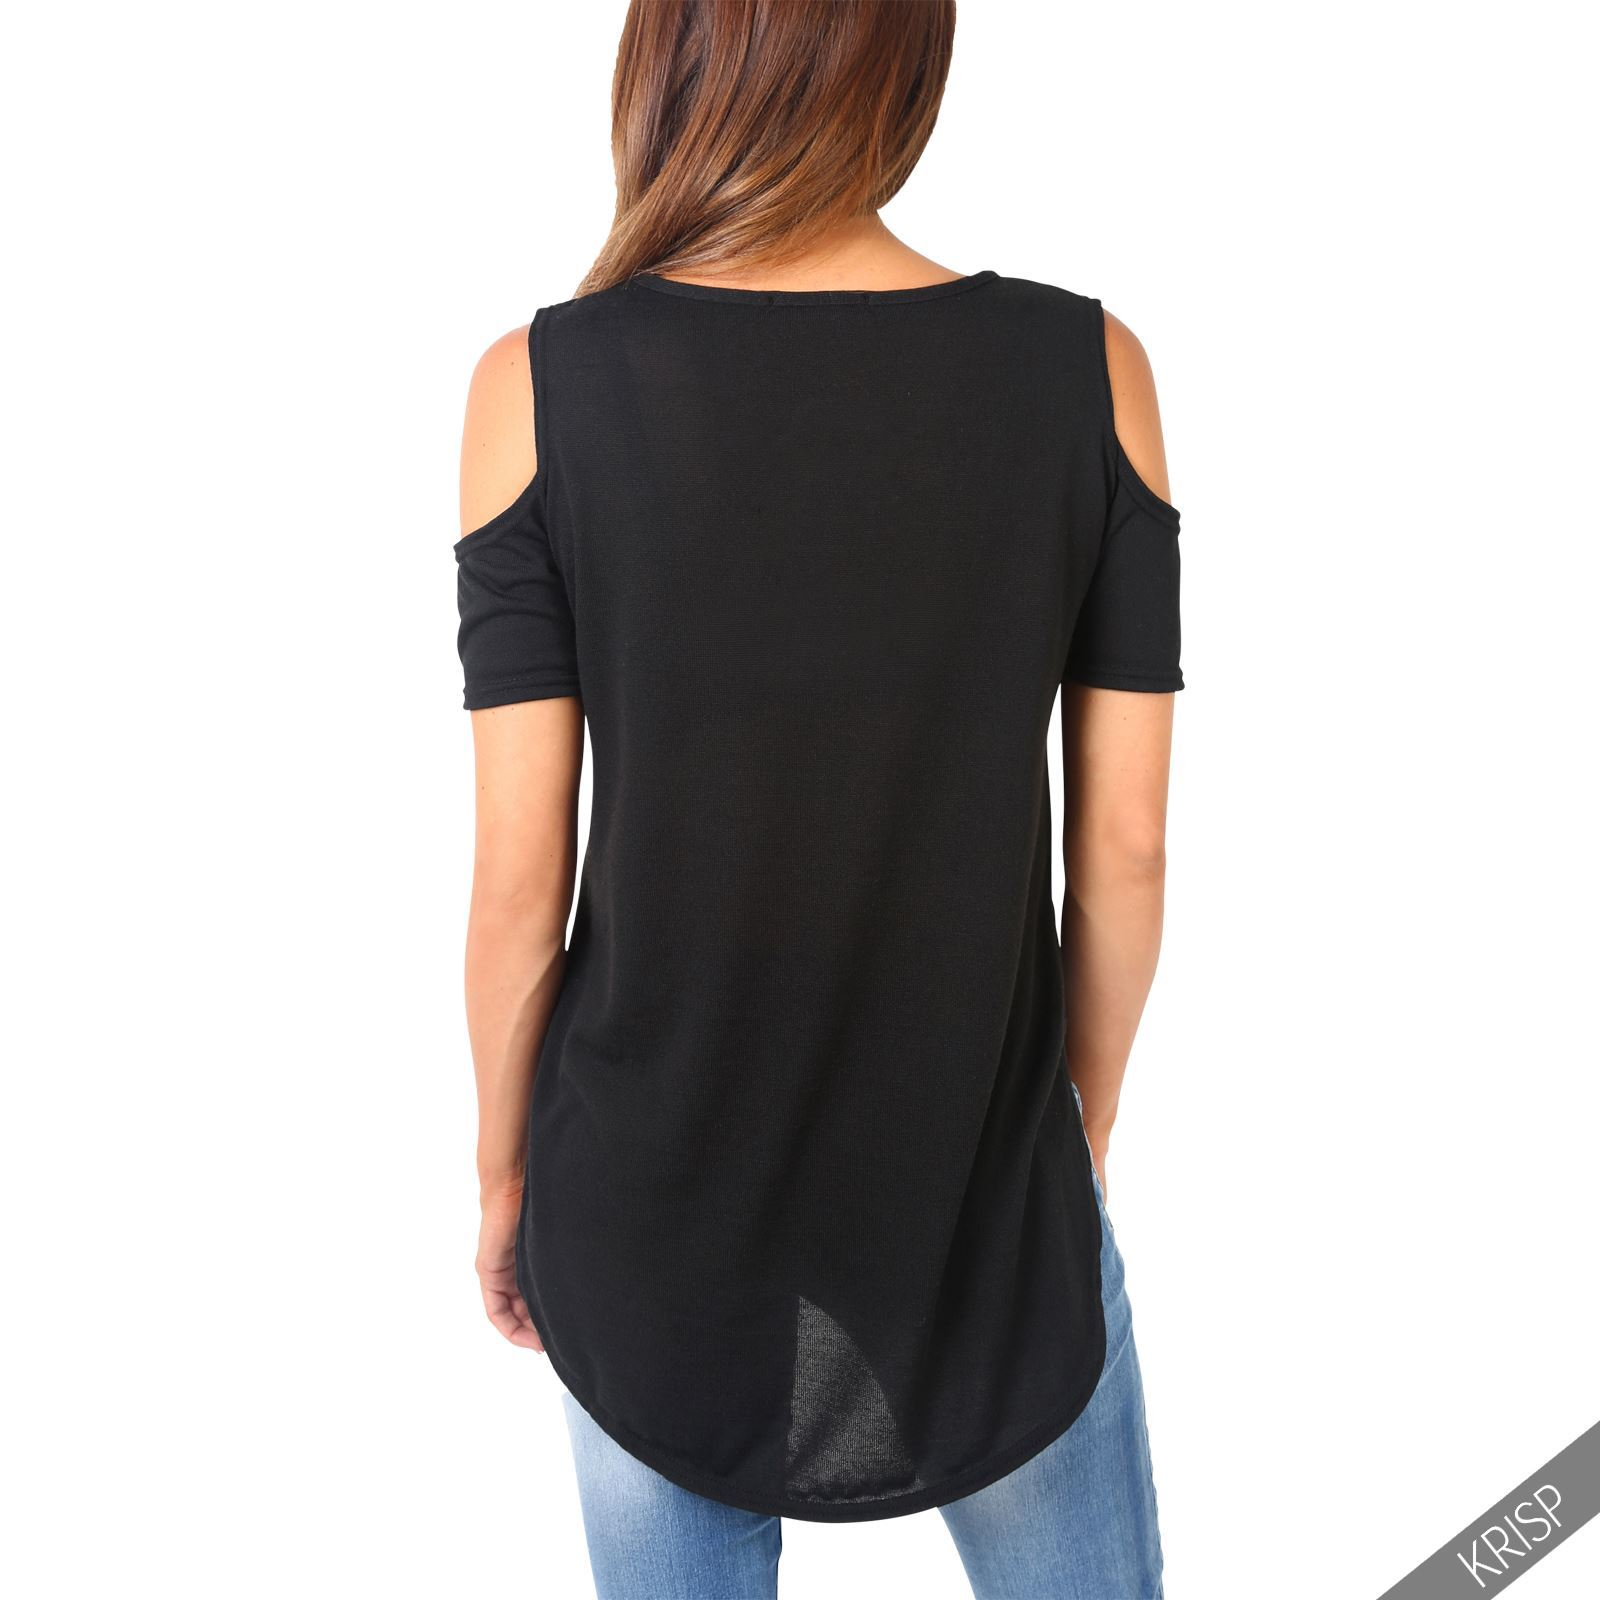 NEW WOMENS LADIES MARL KNIT CUT OUT SLEEVE COLD SHOULDER ASYMMETRIC T SHIRT TOP